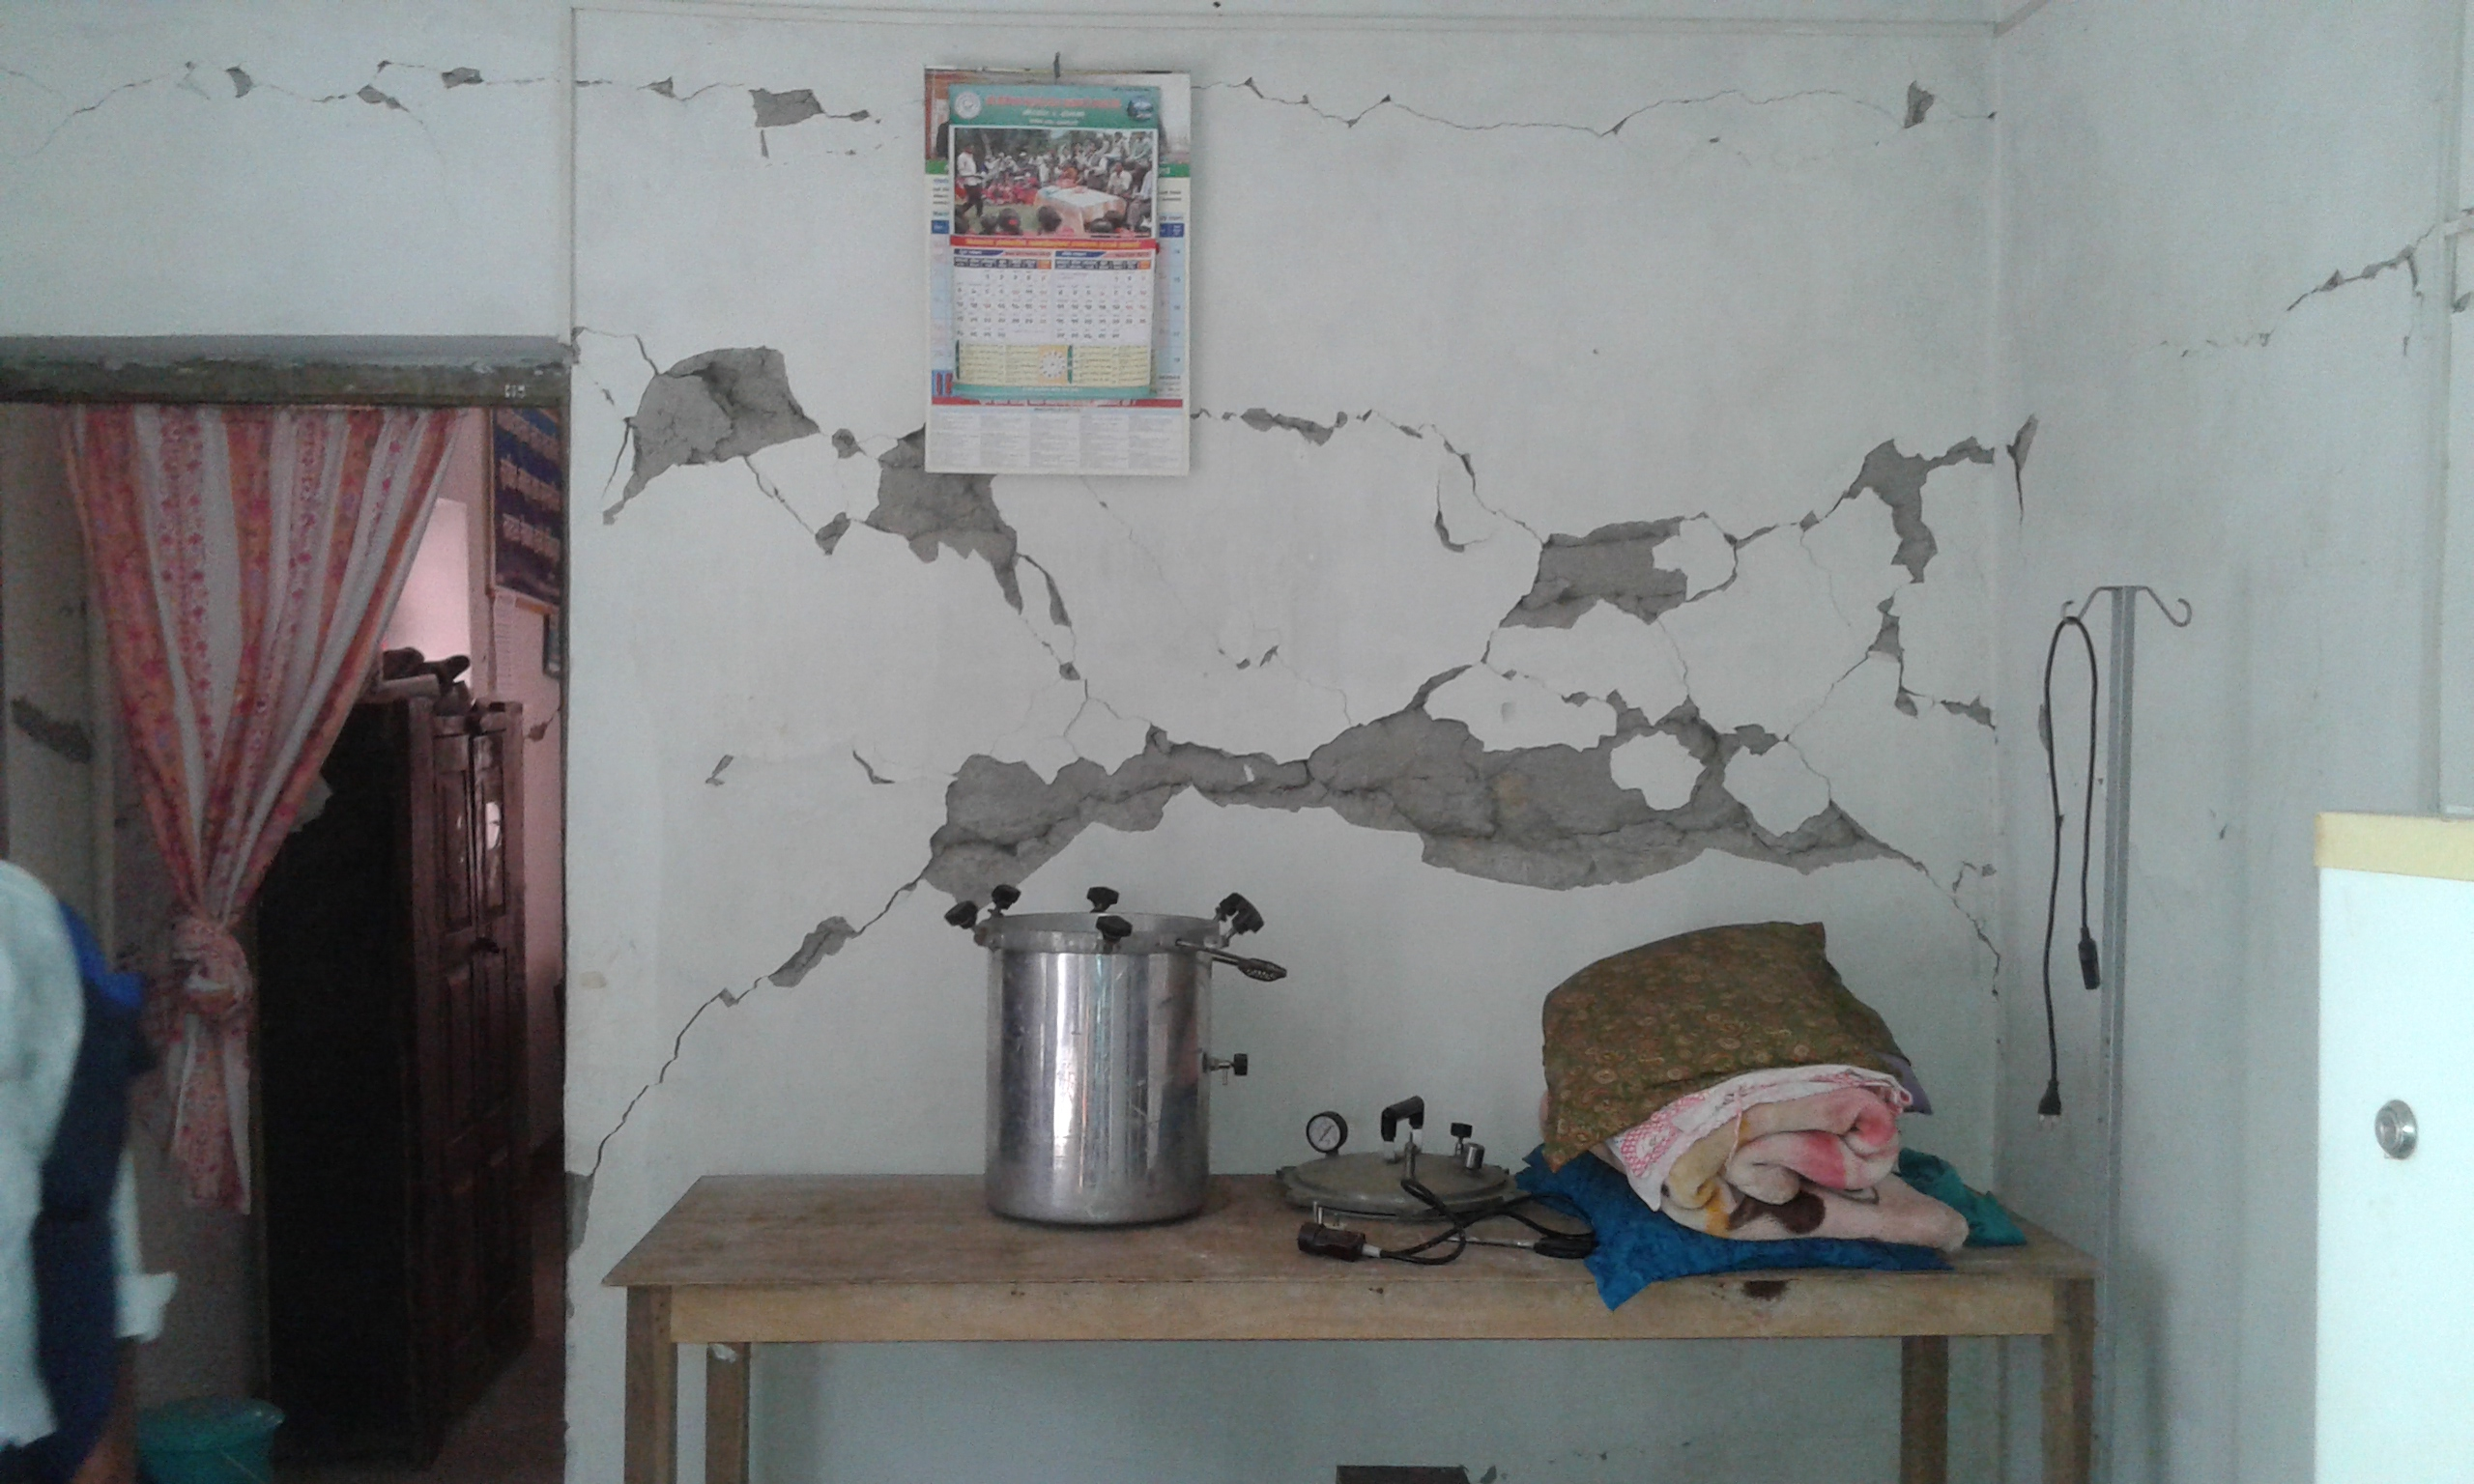 Cracked walls of the Bhirkot Health Post that was damaged during the earthquake and  will be one of the health posts rebuilt by Possible in 2015.